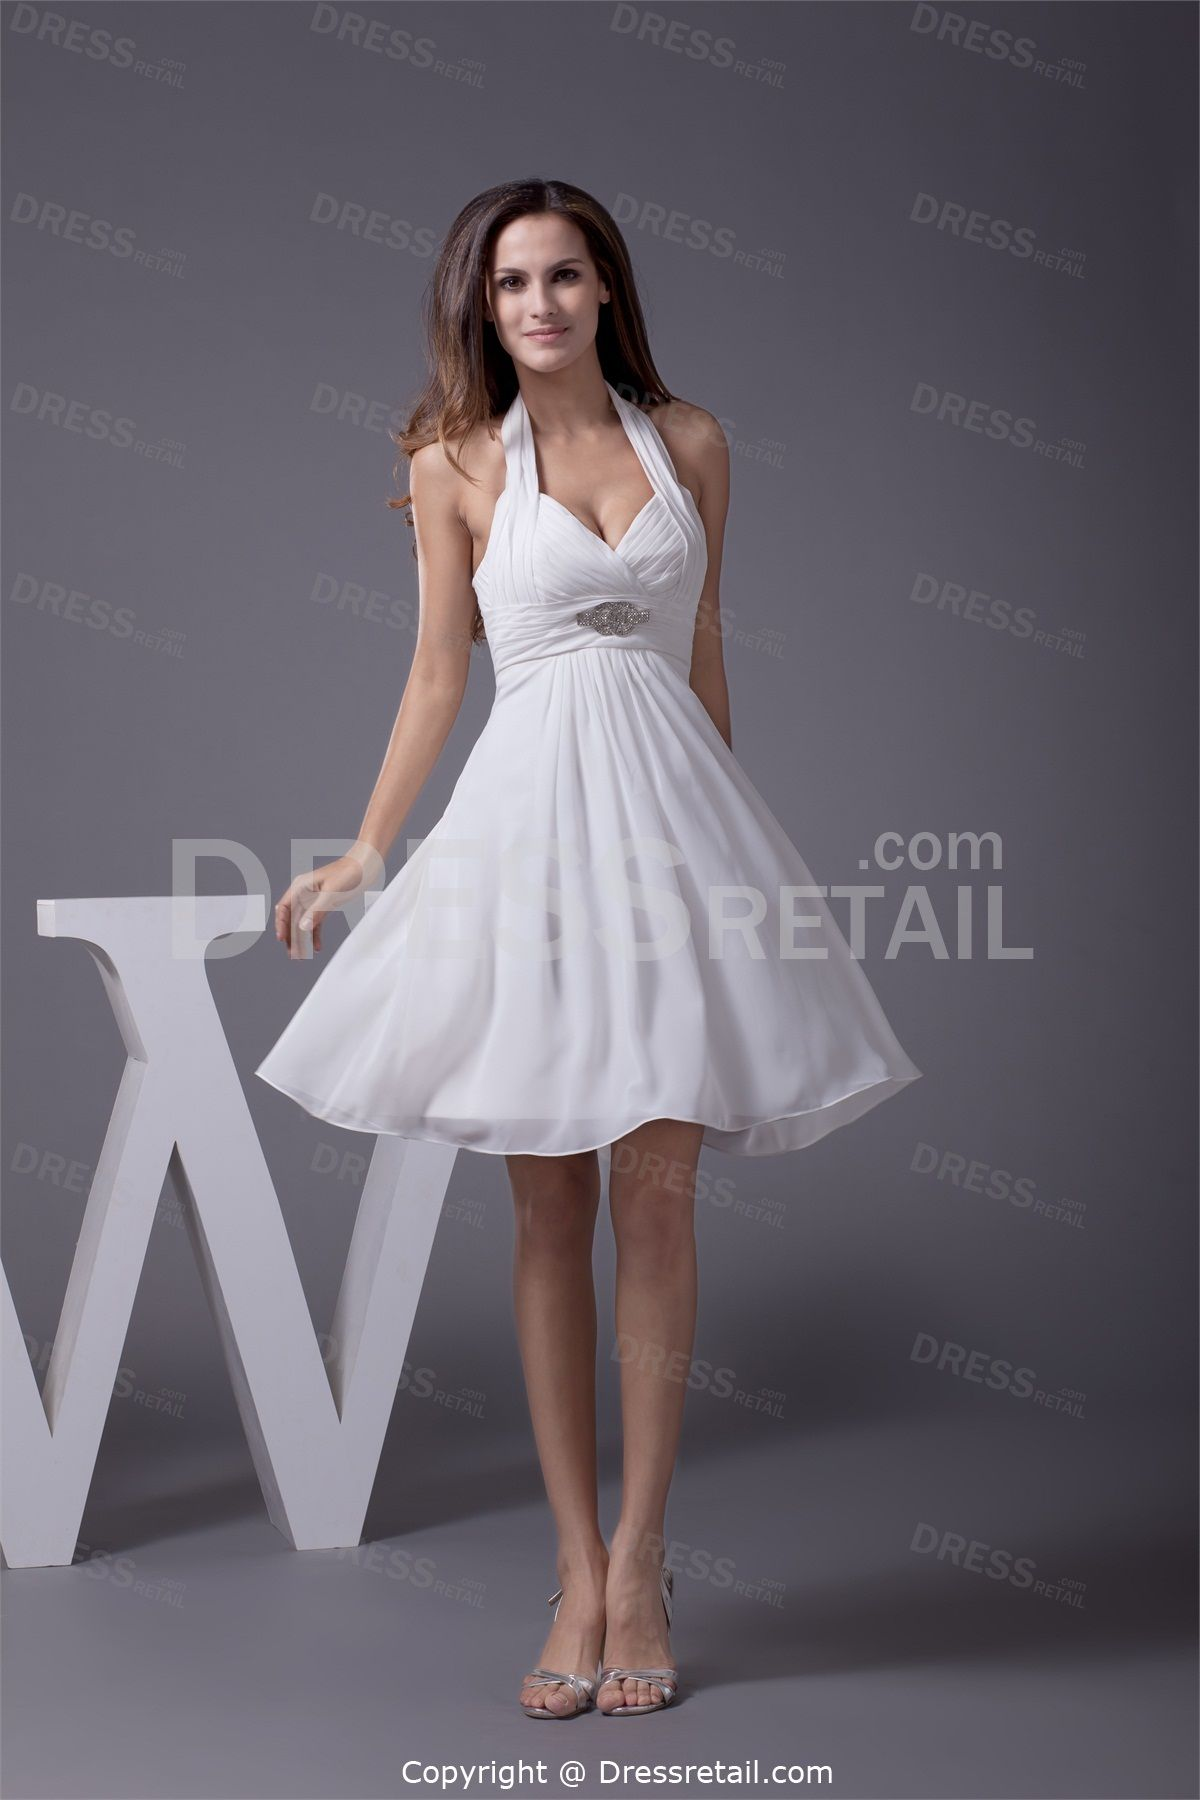 Mini white wedding dress  Elegant Short Mini Chiffon Halter White Bridesmaid Dress  wedding